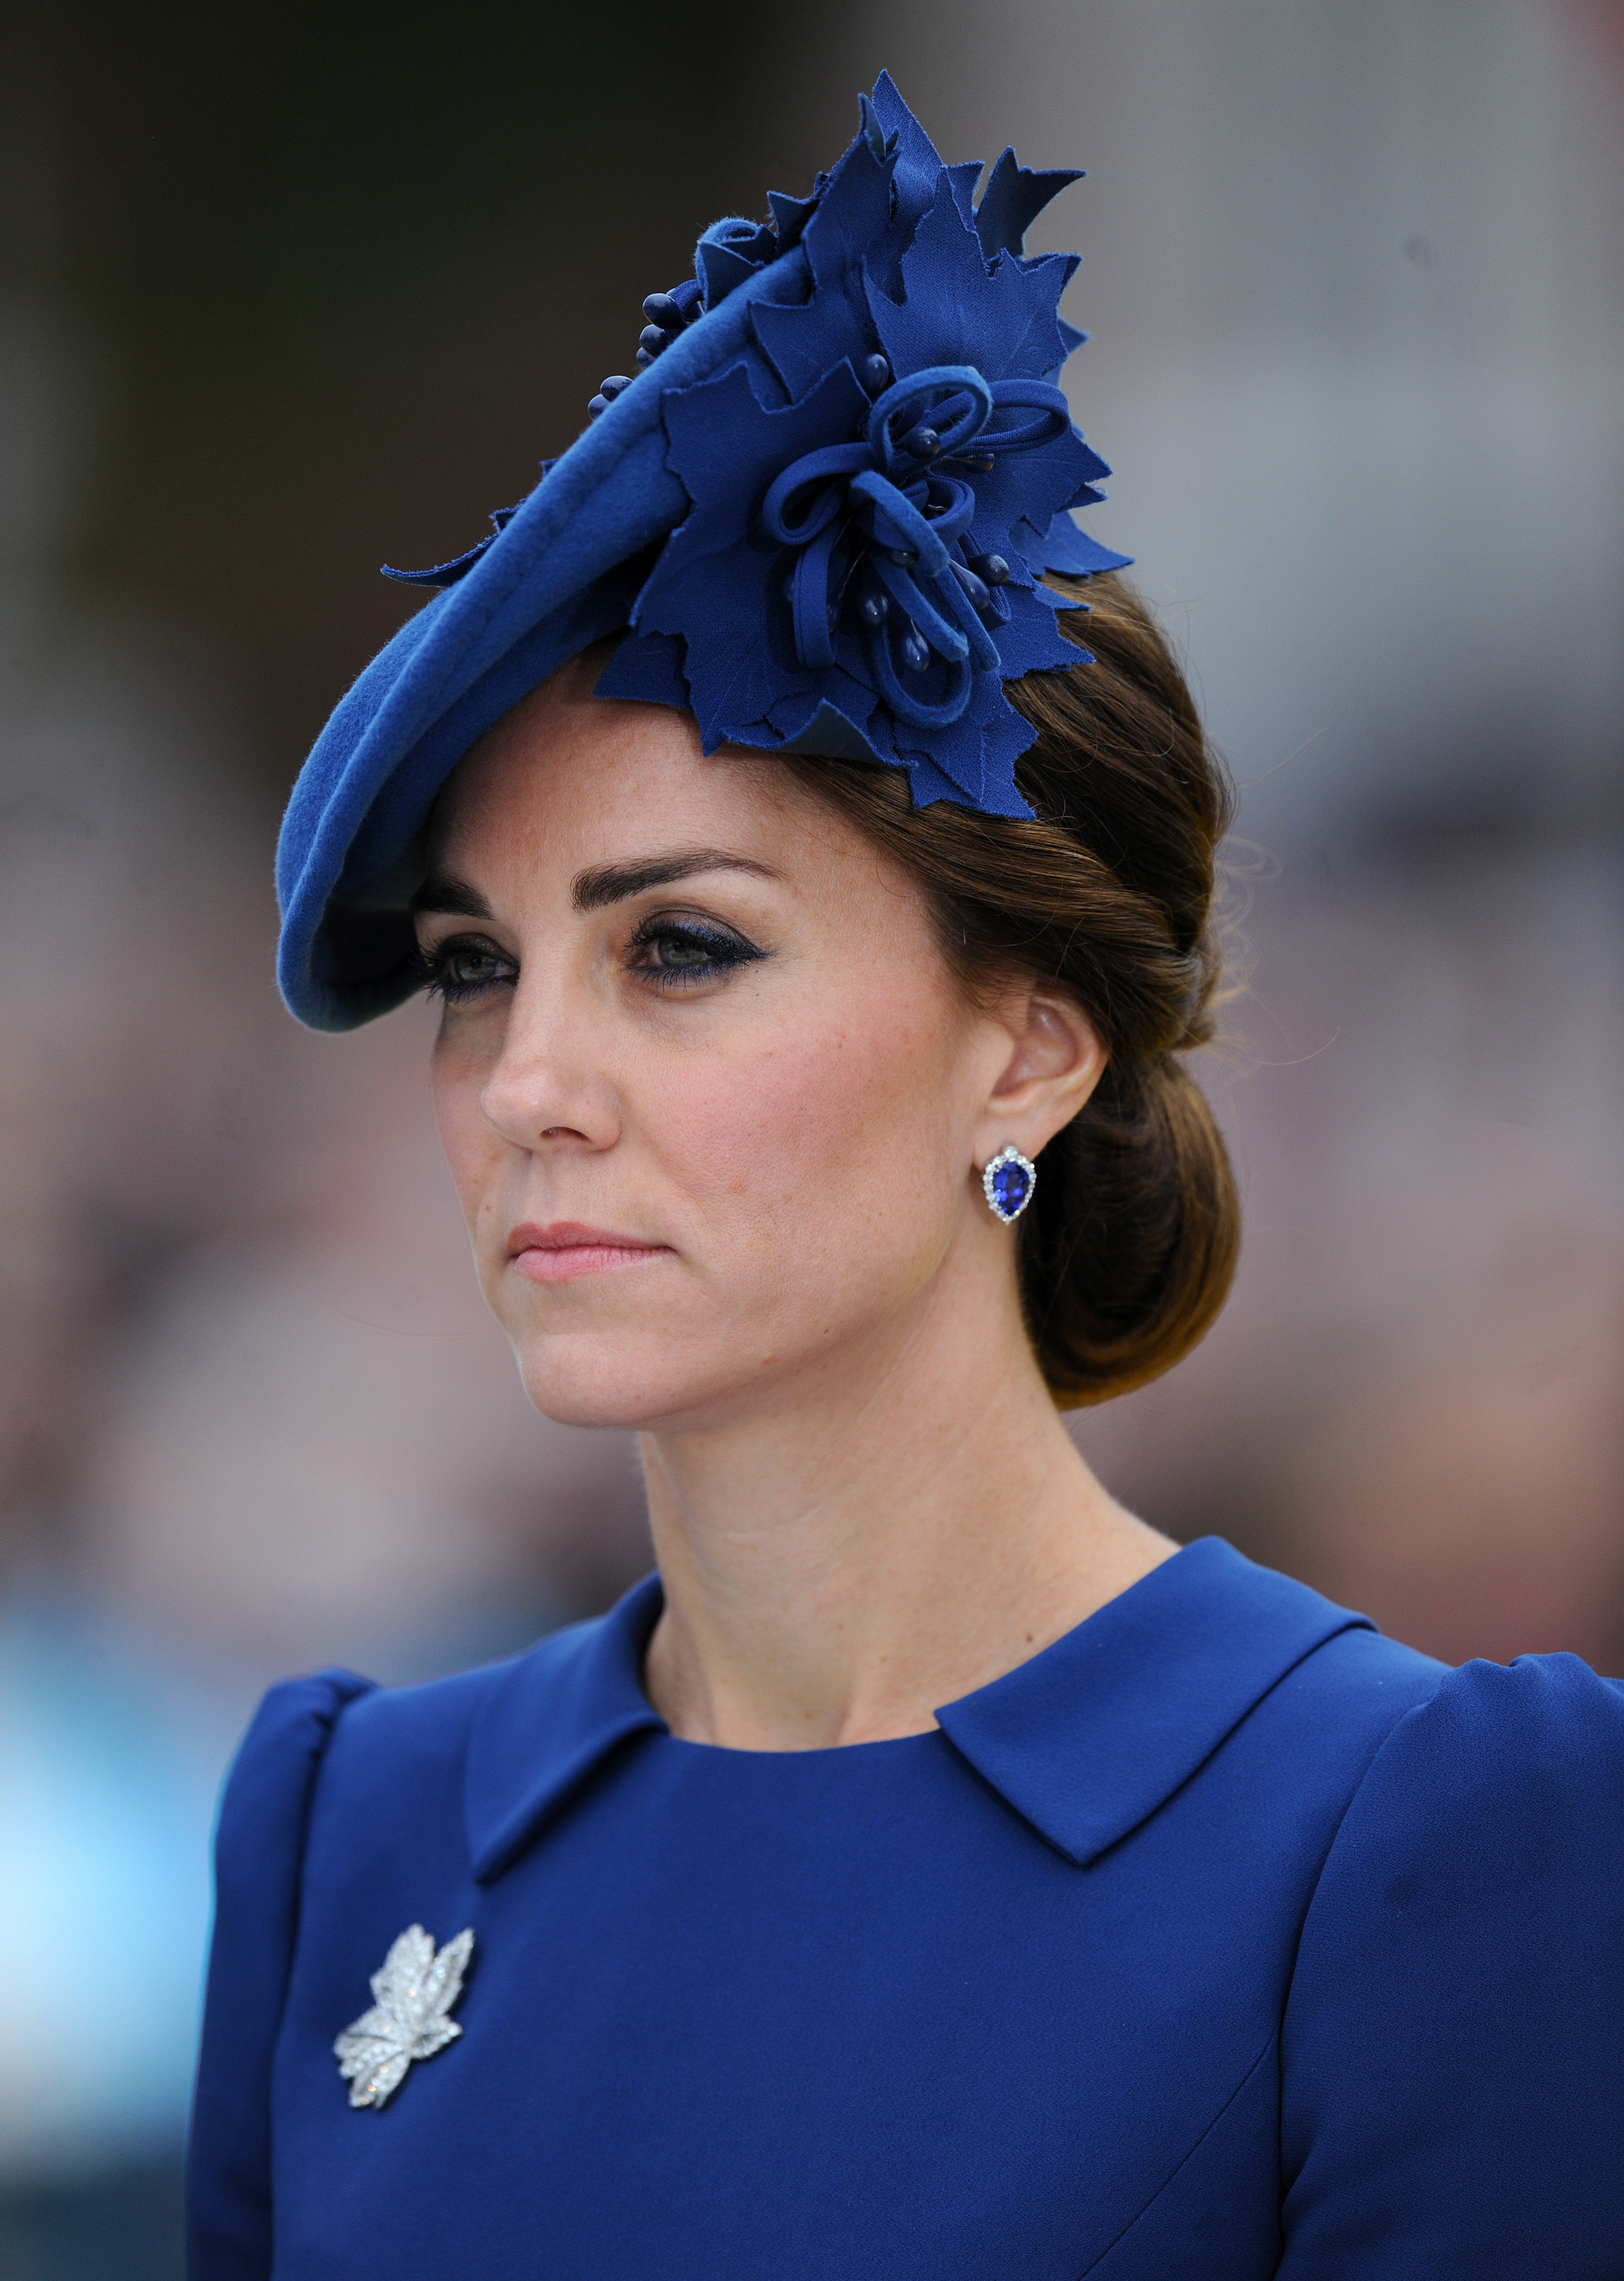 Kate Middleton hats  the Duchess of Cambridge s 21 best looks     7Seriously blue